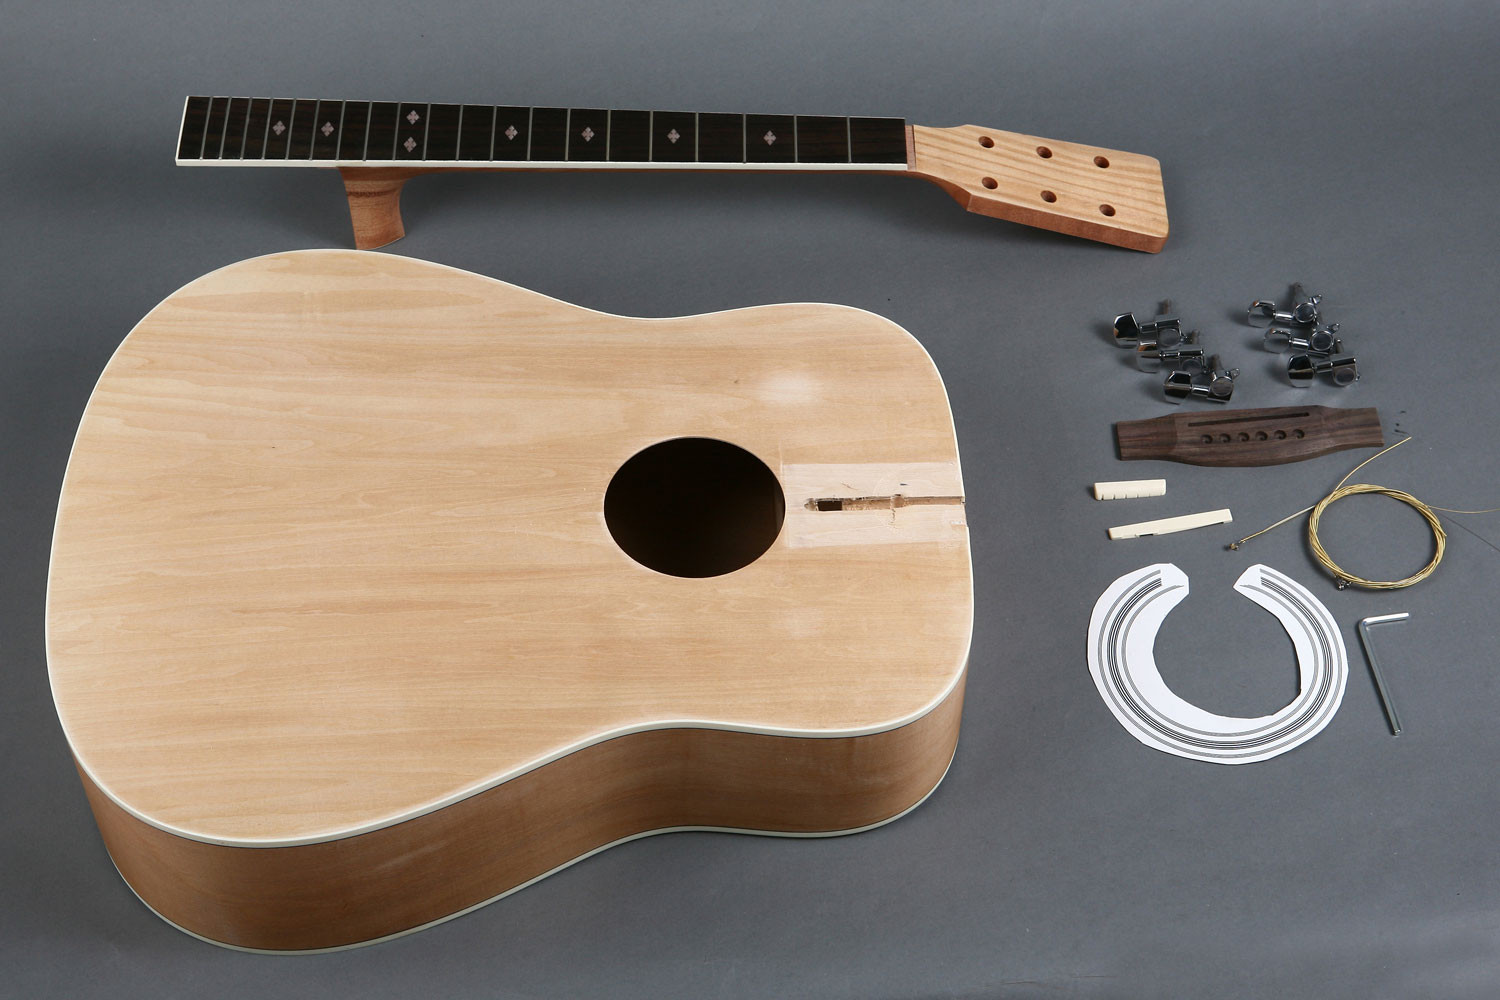 Best ideas about DIY Acoustic Guitar Kits . Save or Pin Unfinished 41' Dreadnought Acoustic Guitar DIY Kit GK Now.